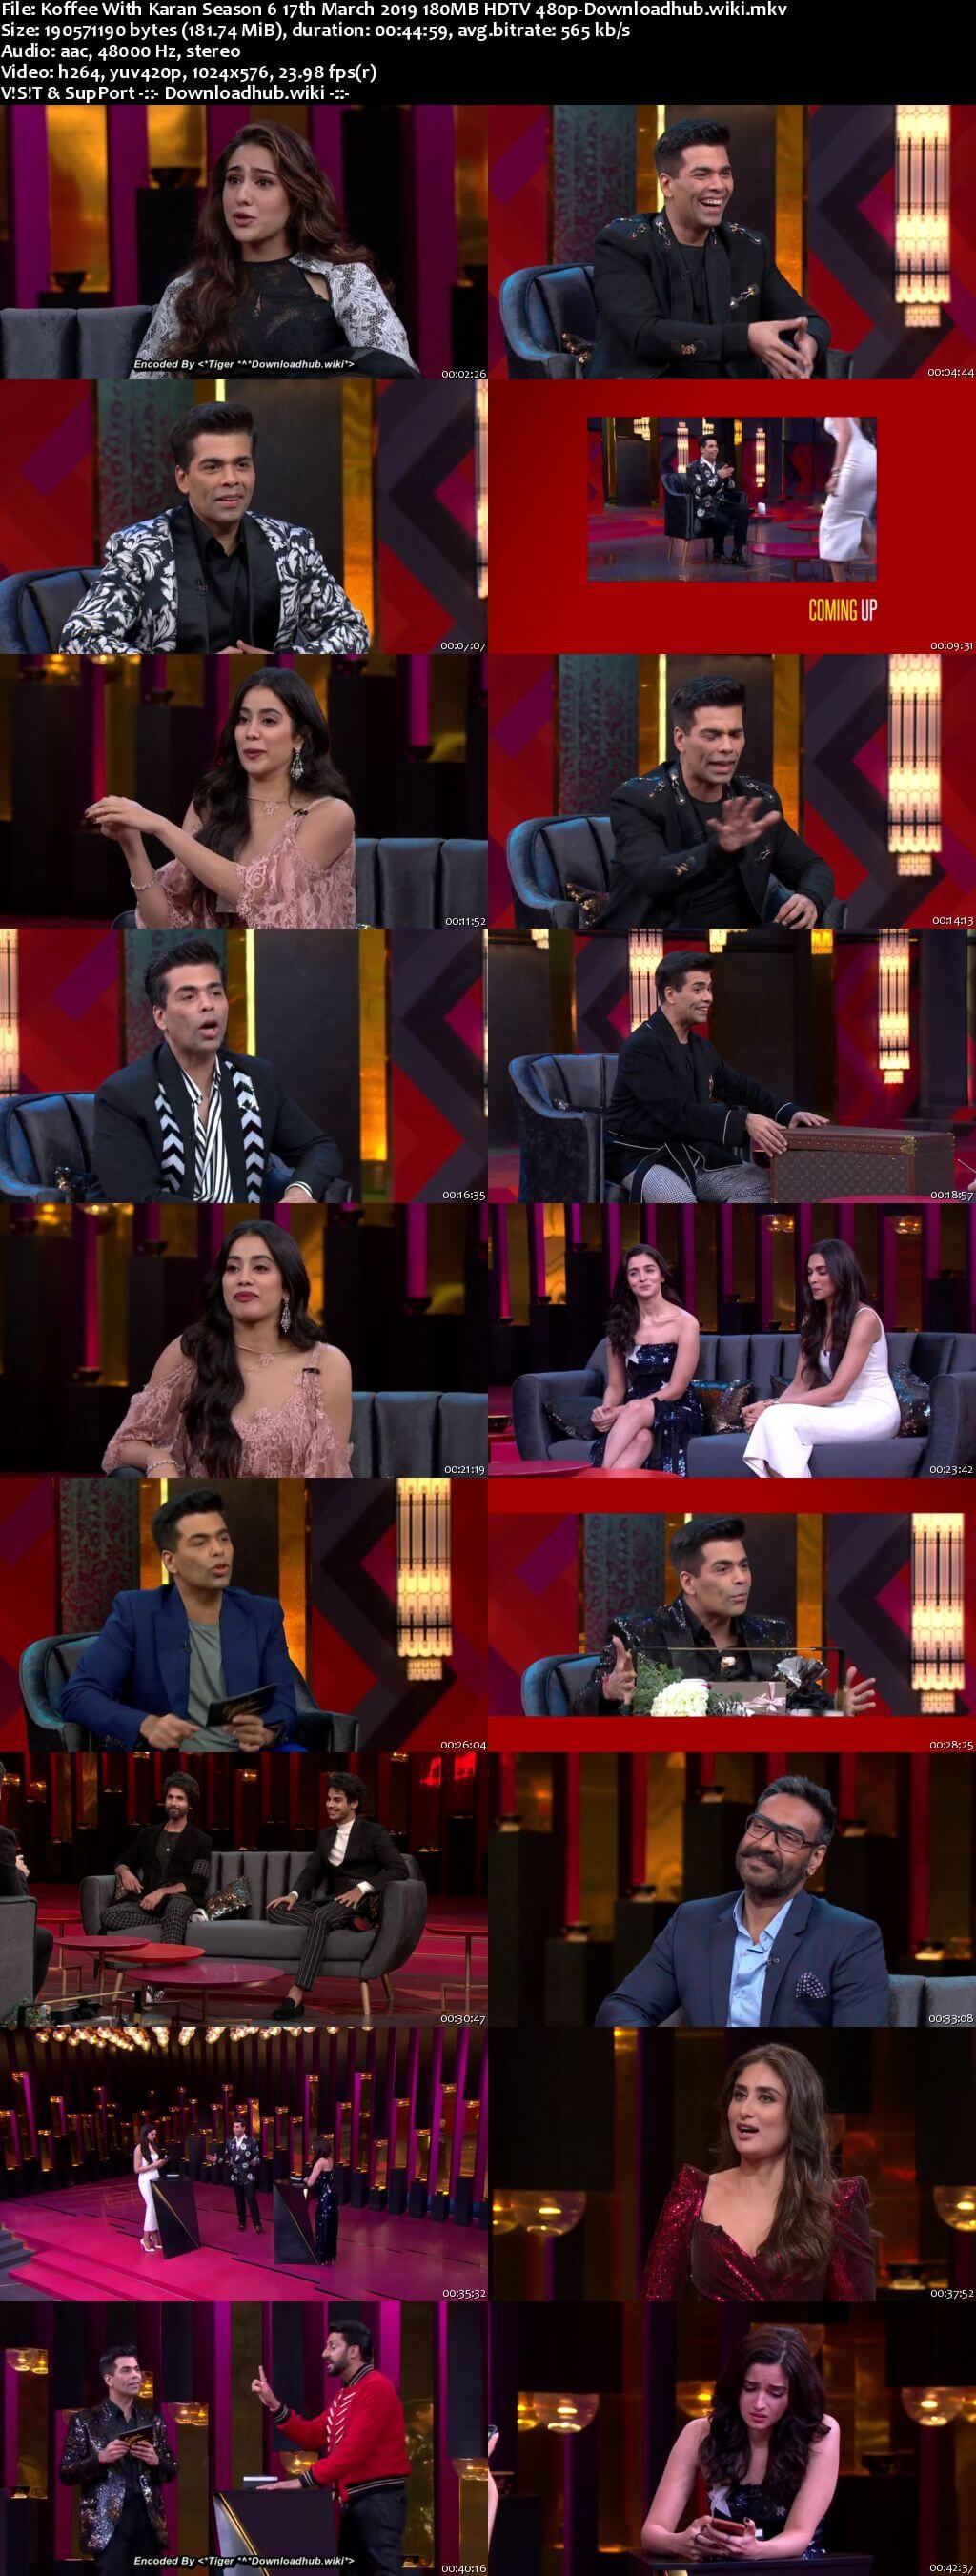 Koffee With Karan 6 17 March 2019 Episode 22 HDTV 480p